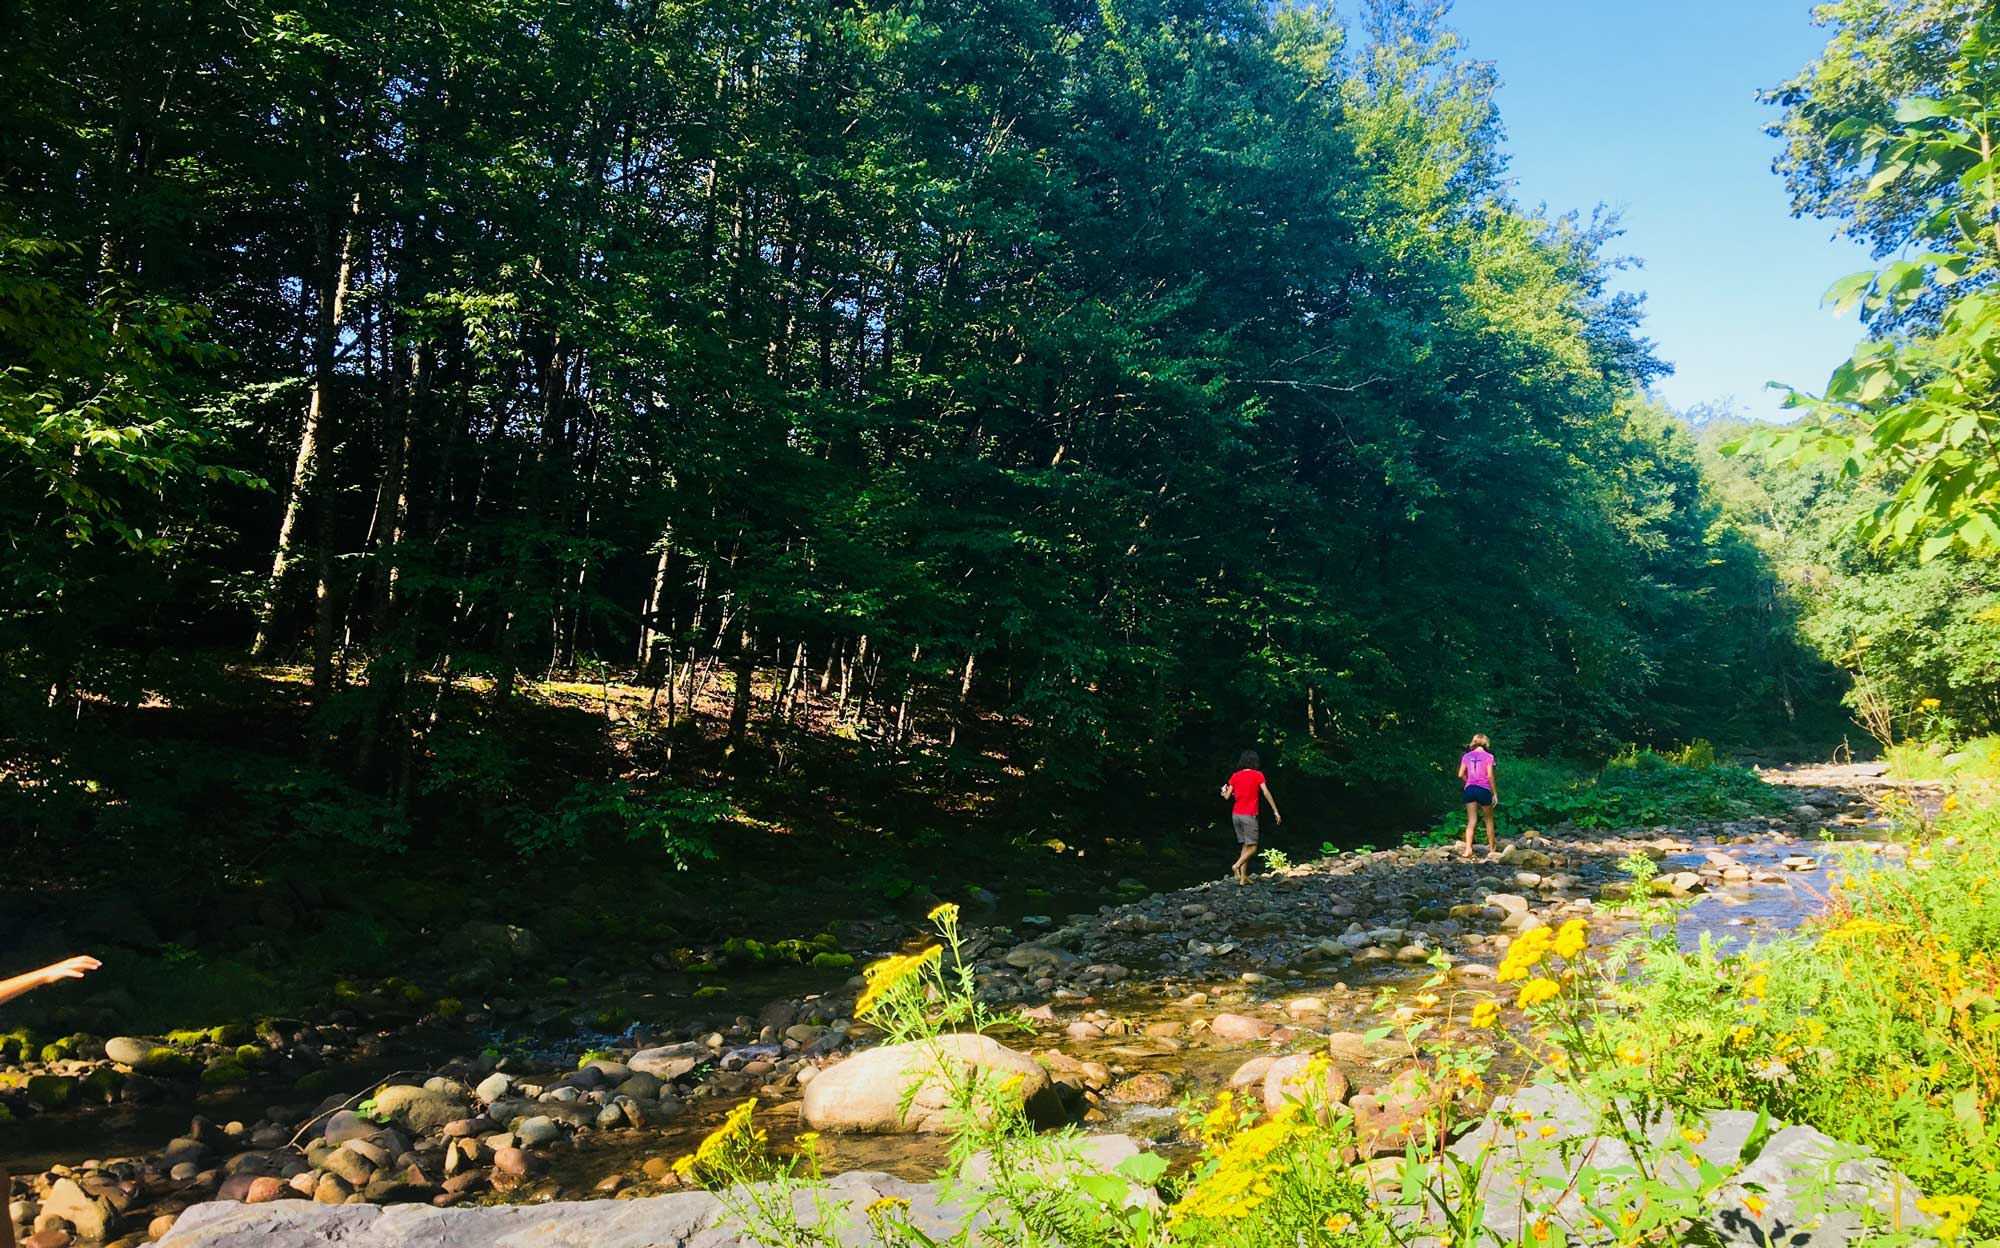 Two girls playin in Woodland Valley Creek near the Woodland Valley Campground in the Catskill Mountains of New York